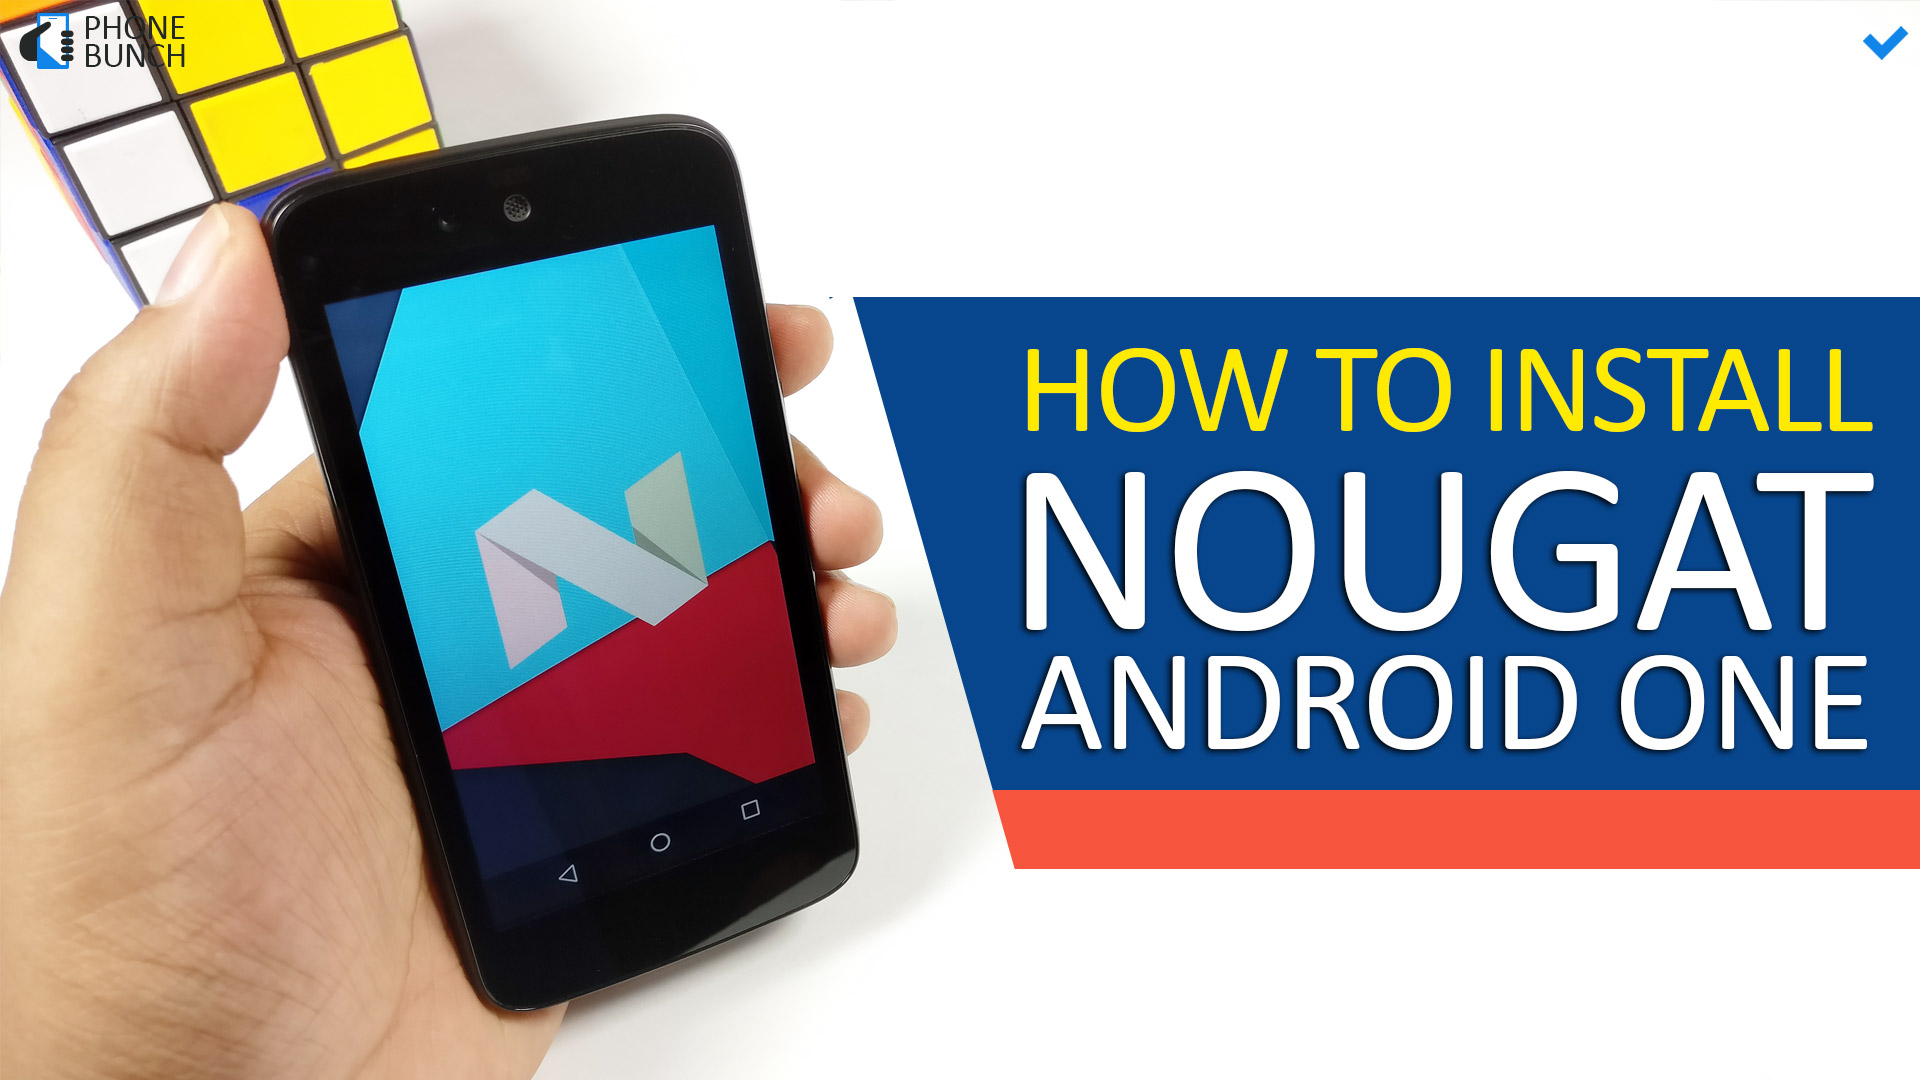 How to Install Android Nougat on your Android One Smartphone - Step